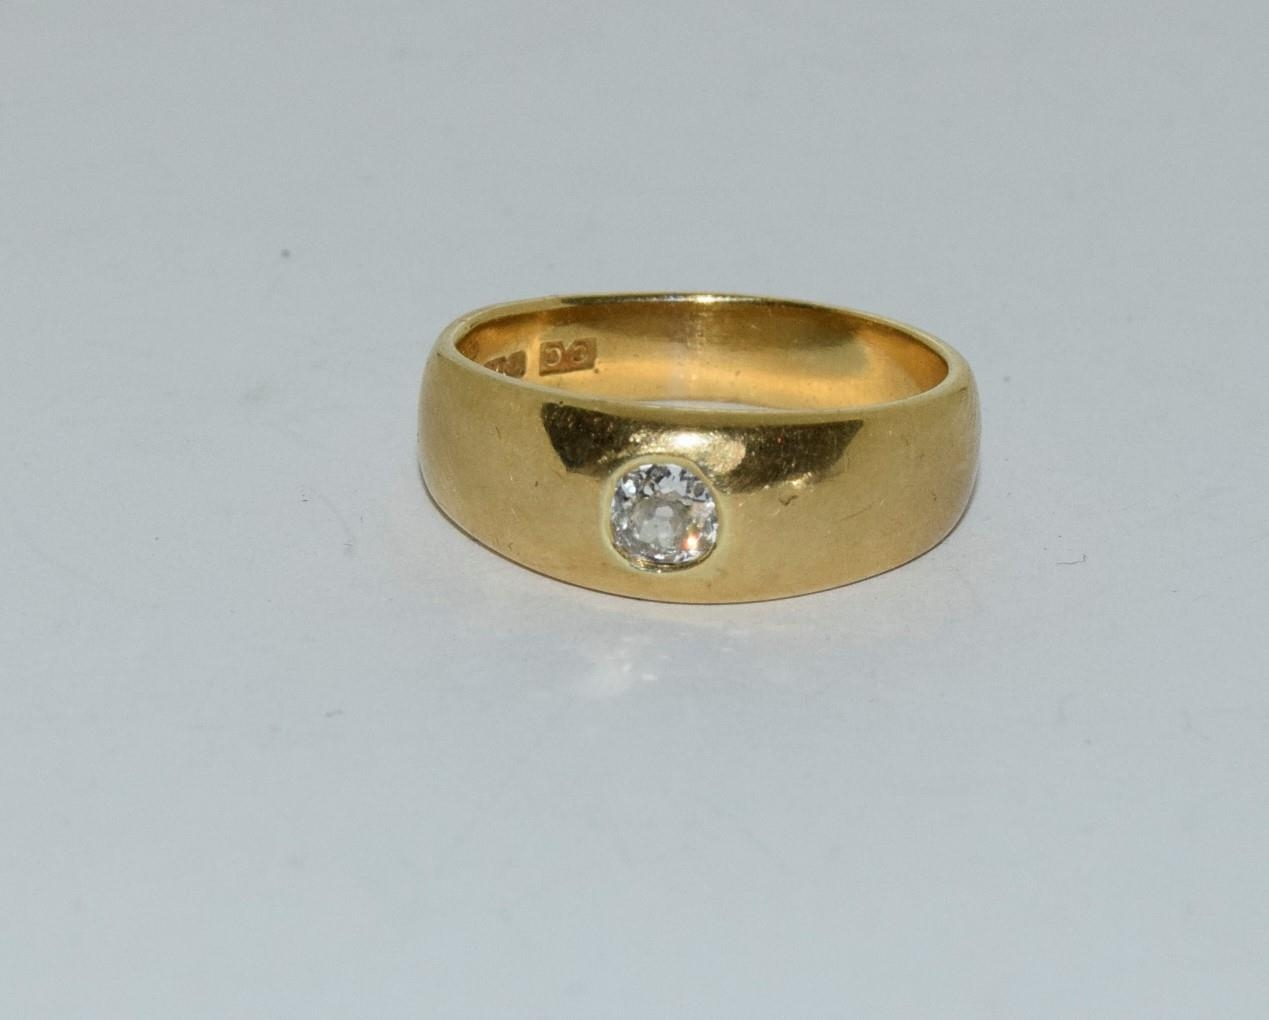 18ct gold mans signet ring set with diamond solitaire of approx 0.25ct size R 9.5gm - Image 6 of 6